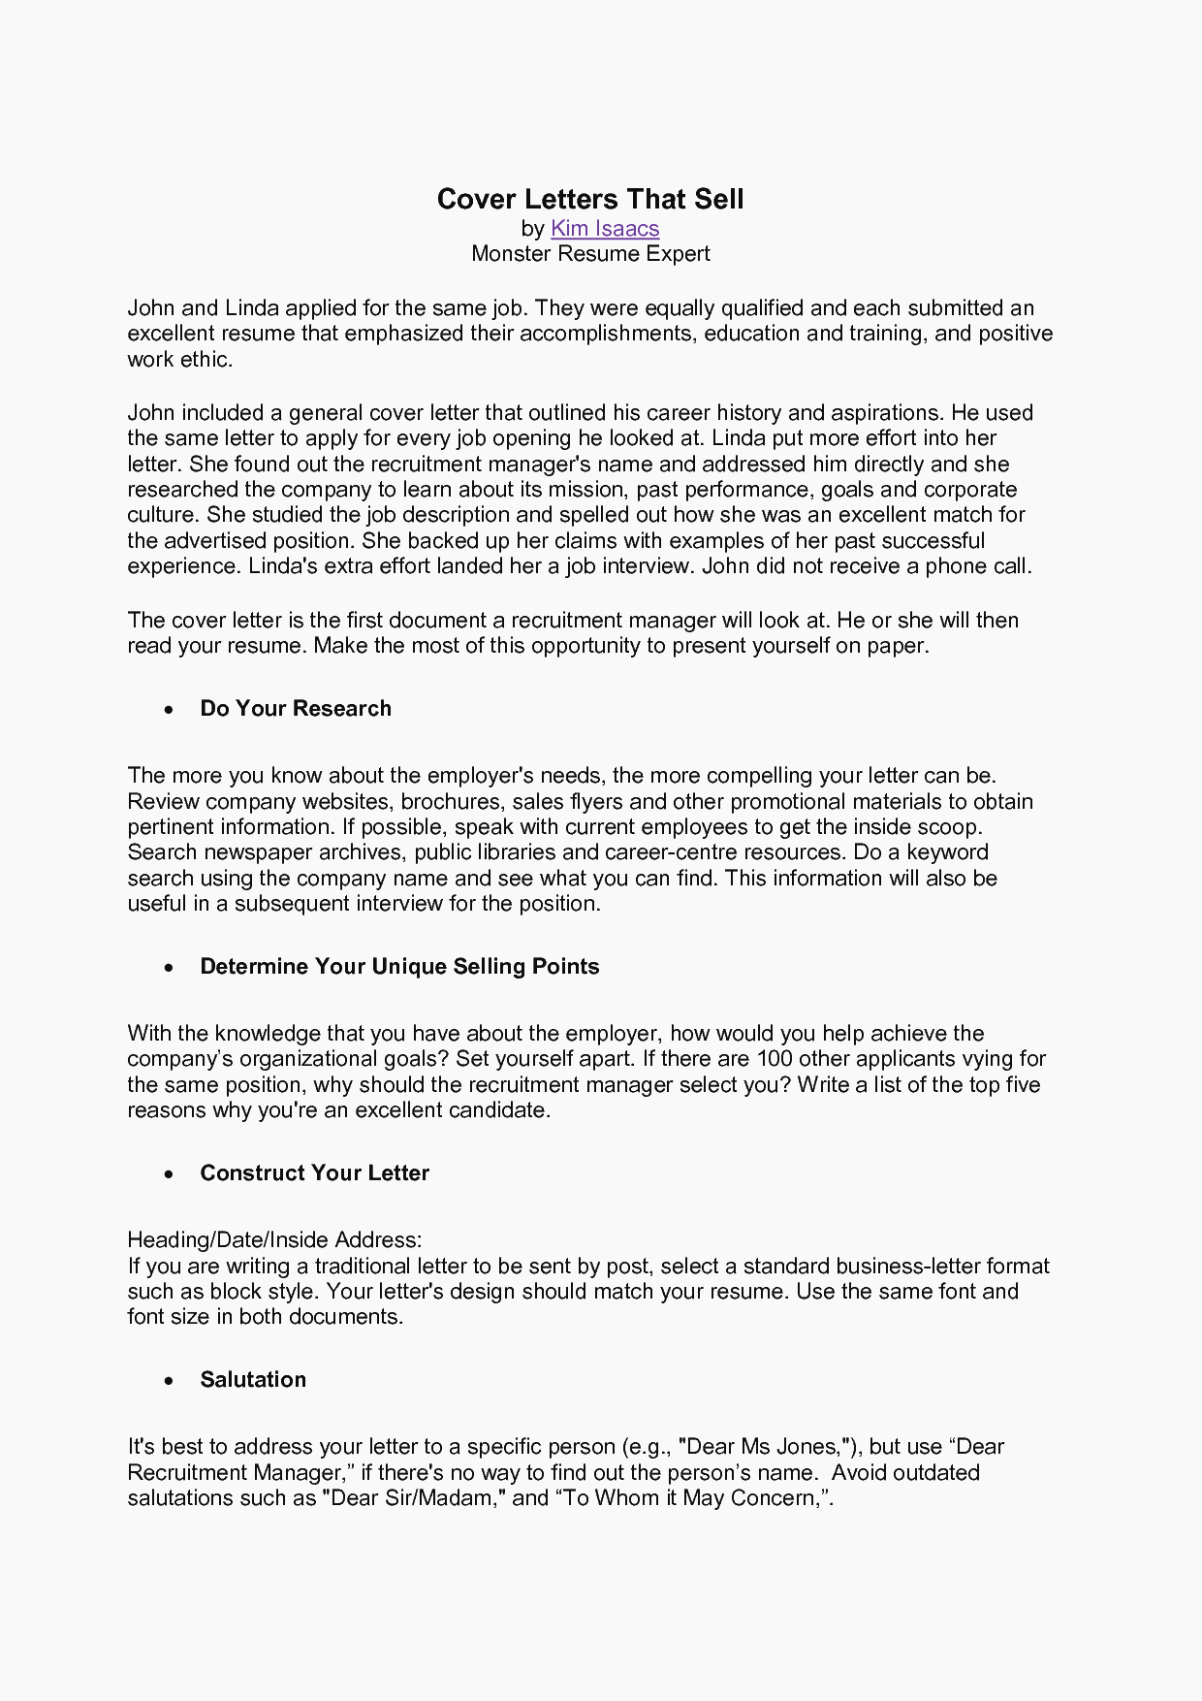 Cover Letter for Kroger Beautiful Five Reasons why Monster